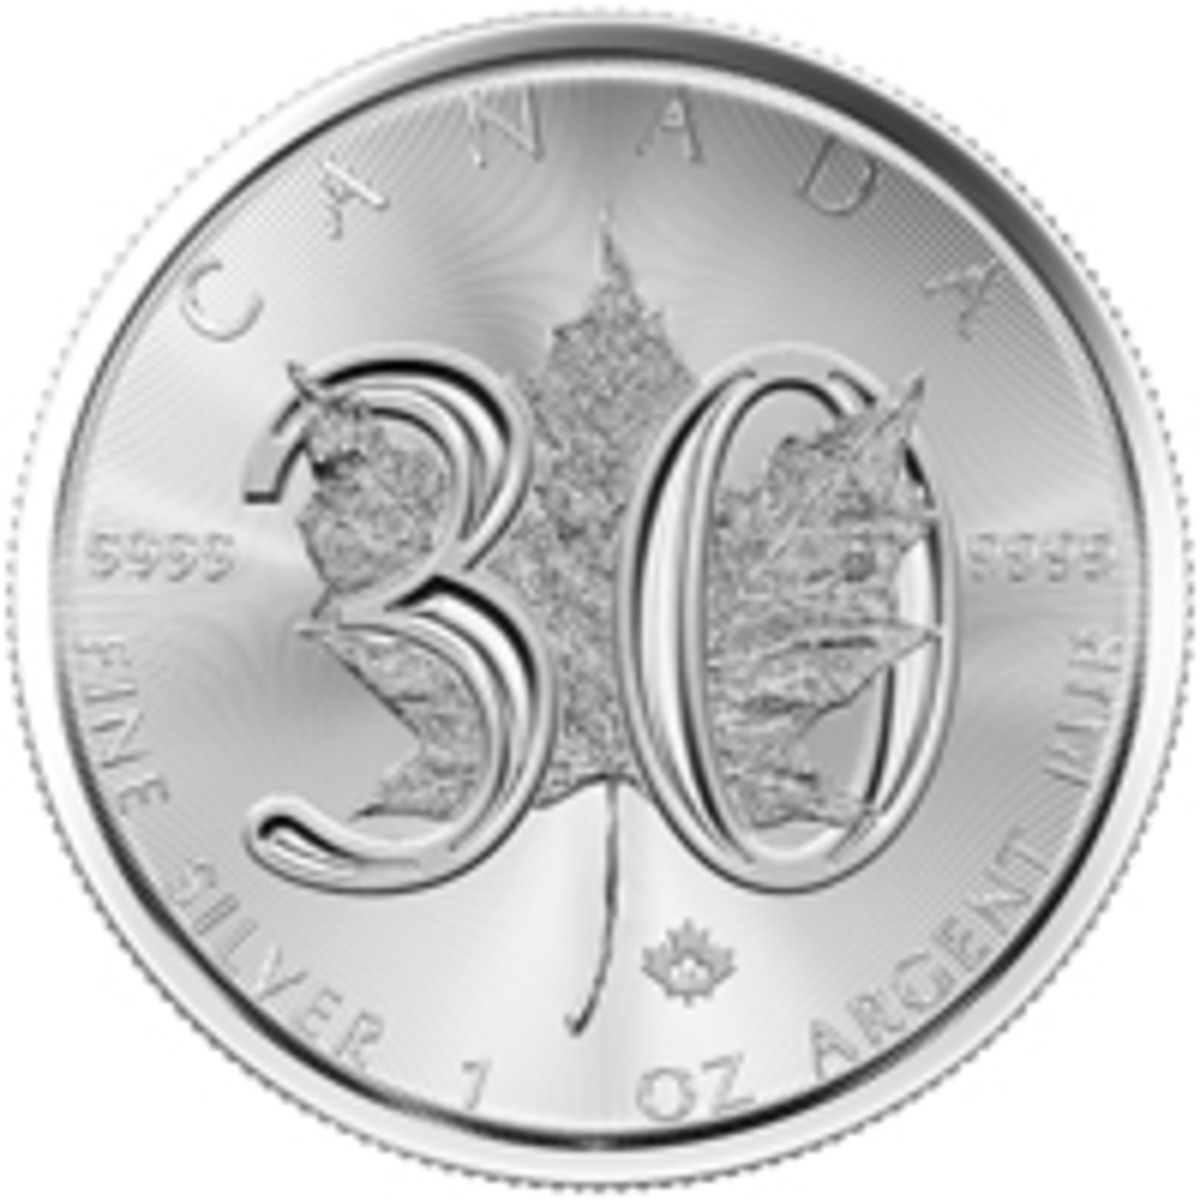 Reverse of RCM's silver $5 marking the 30th anniversary of the Silver Maple Leaf bullion coin. (Image courtesy RCM)